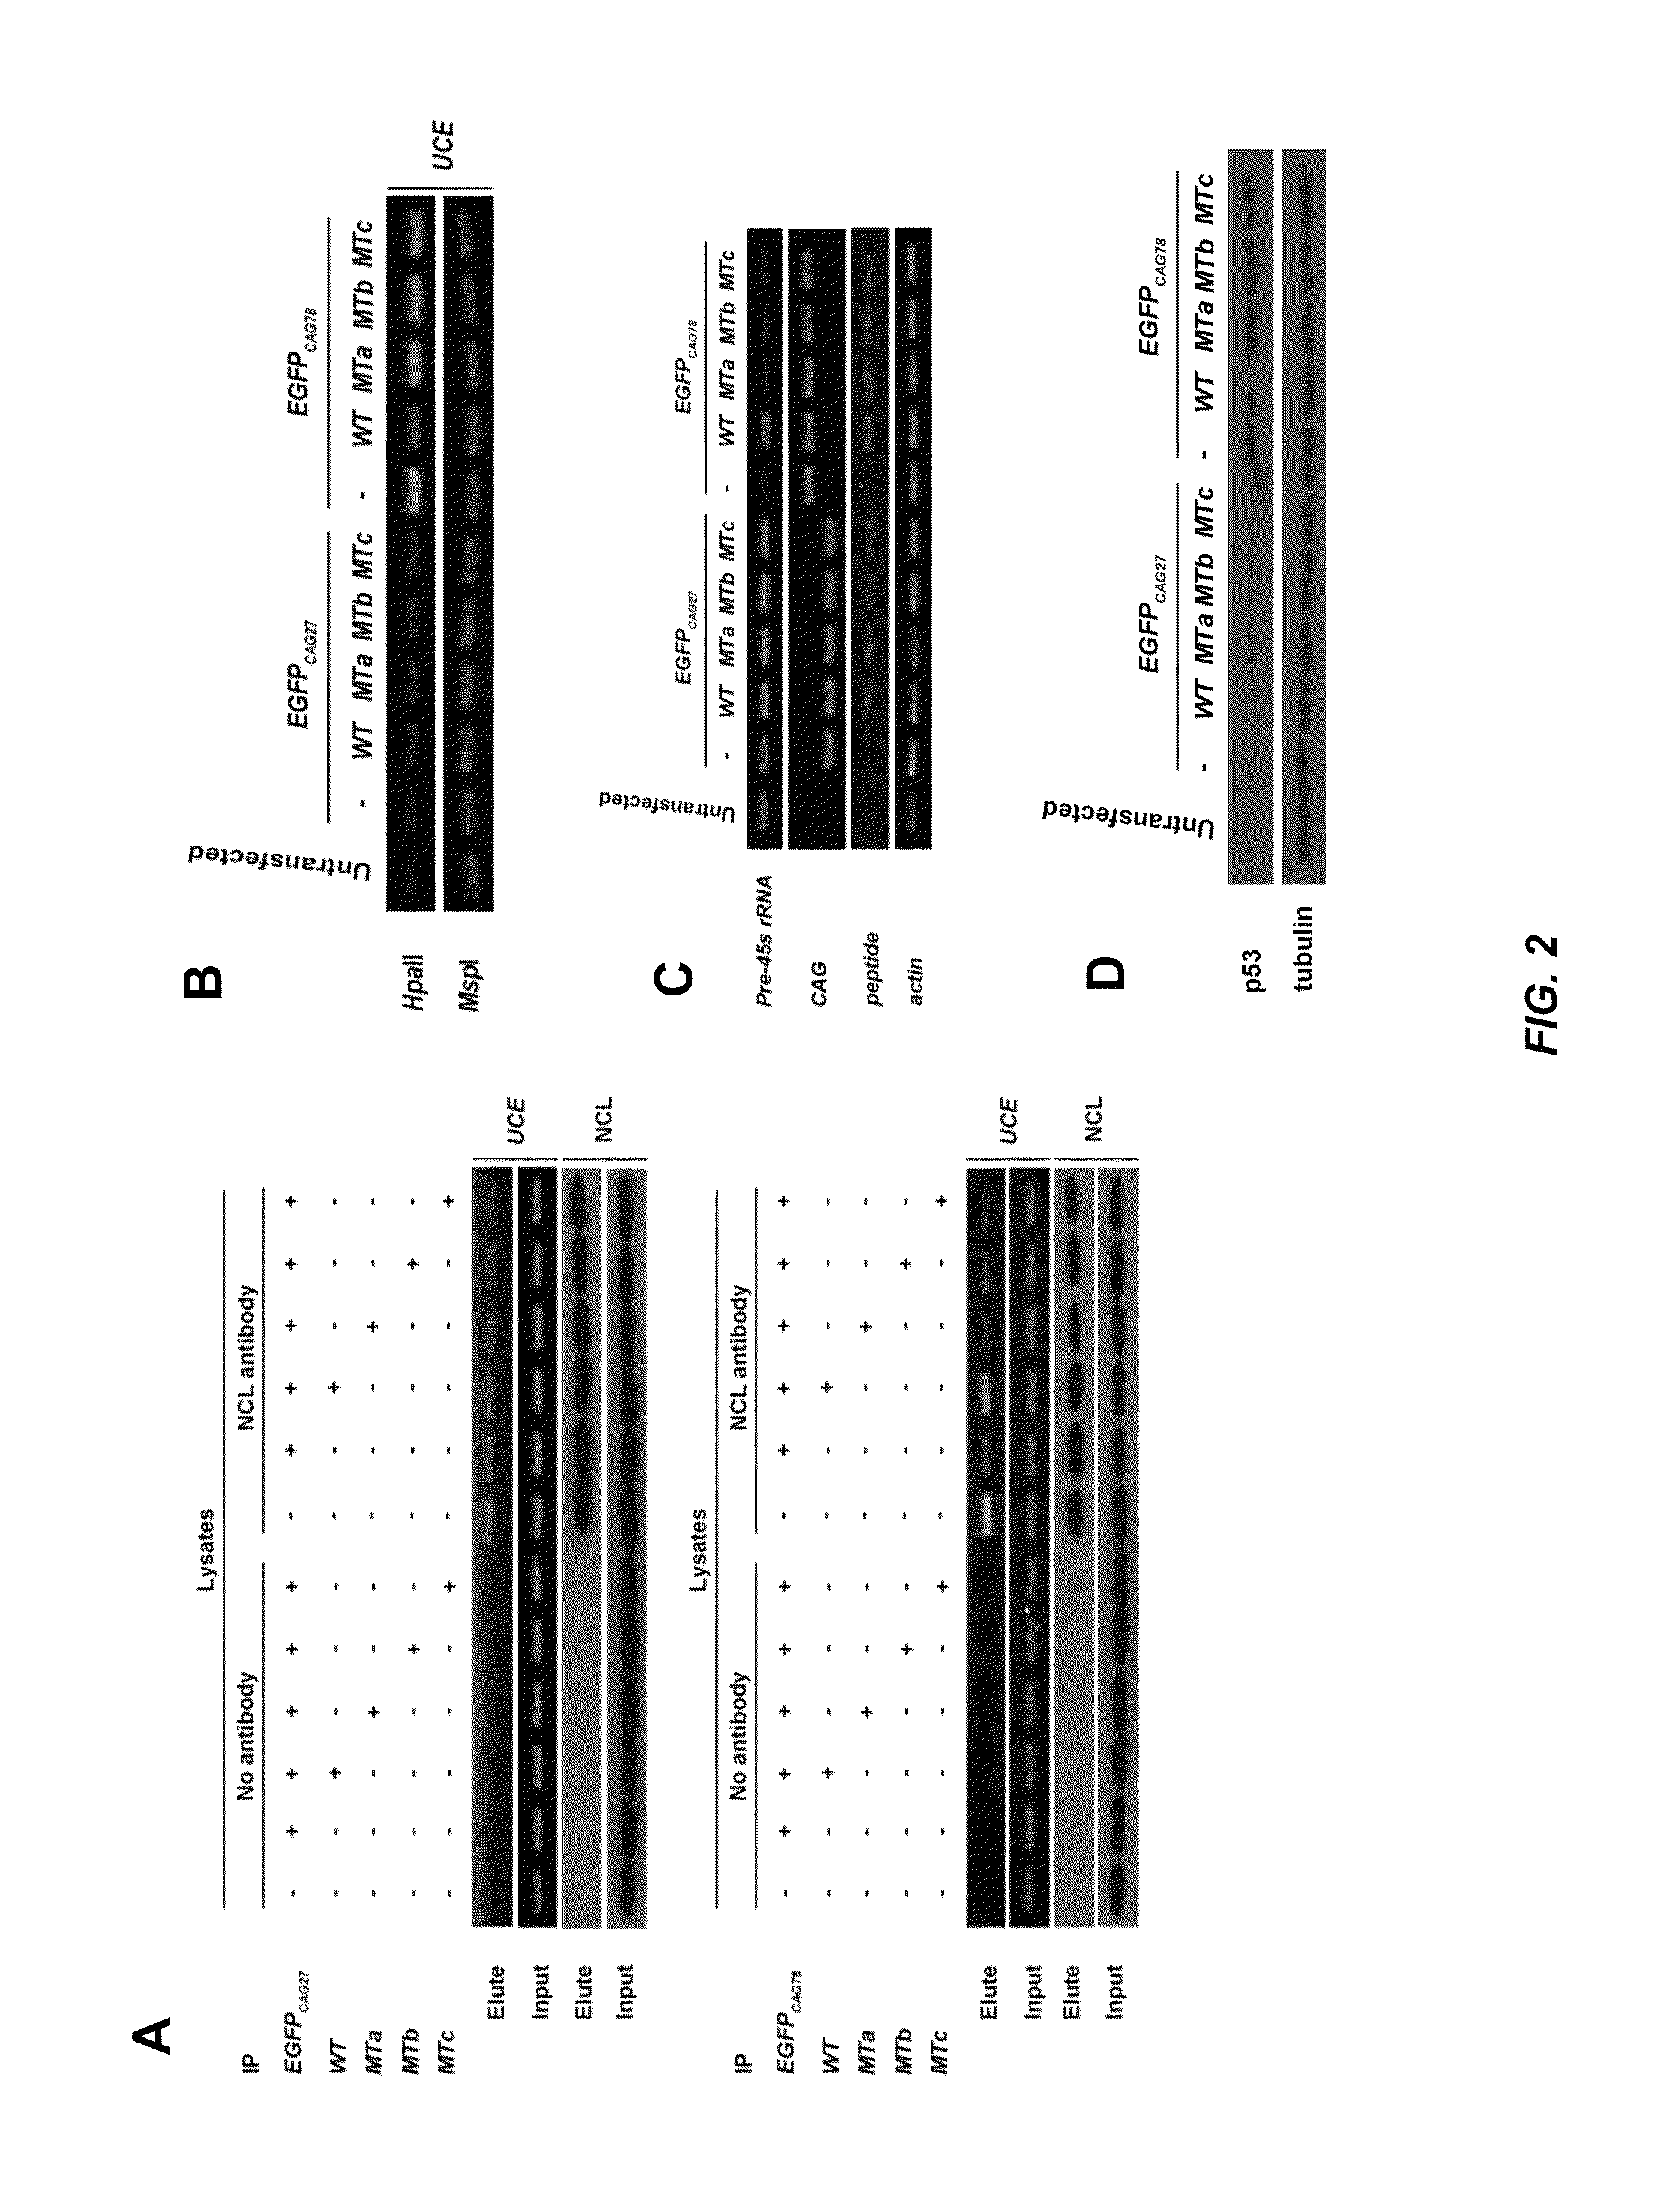 US9297798B2 - Therapeutic approach for polyglutamine